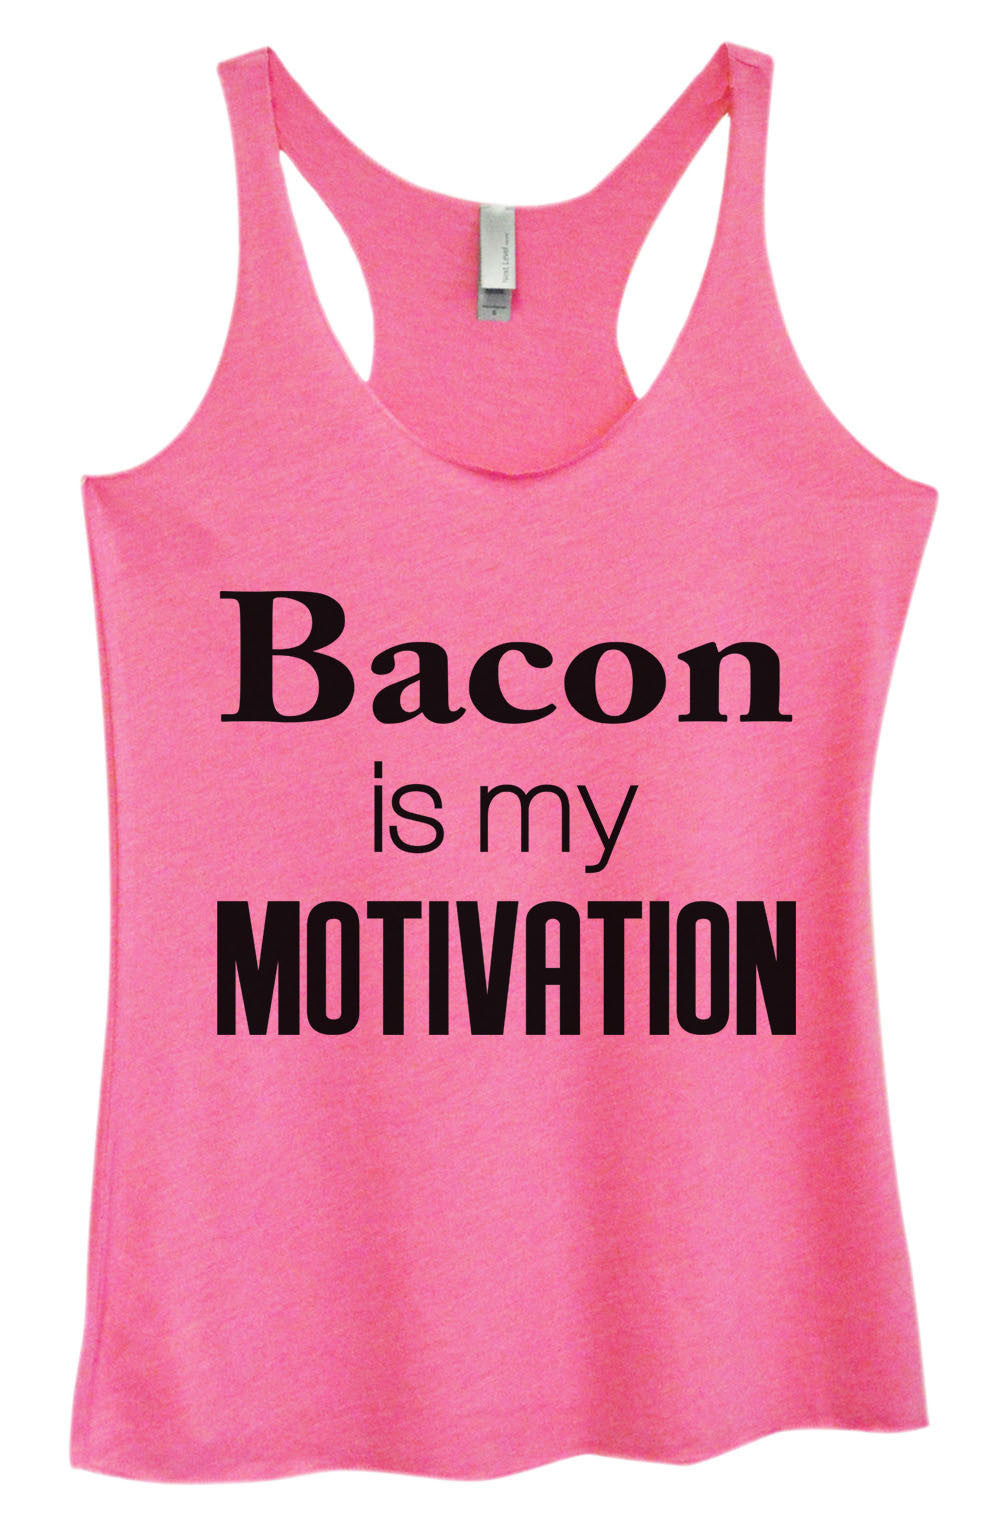 Womens Fashion Triblend Tank Top - Bacon Is My Motivation - Tri-761 - Funny Shirts Tank Tops Burnouts and Triblends  - 4